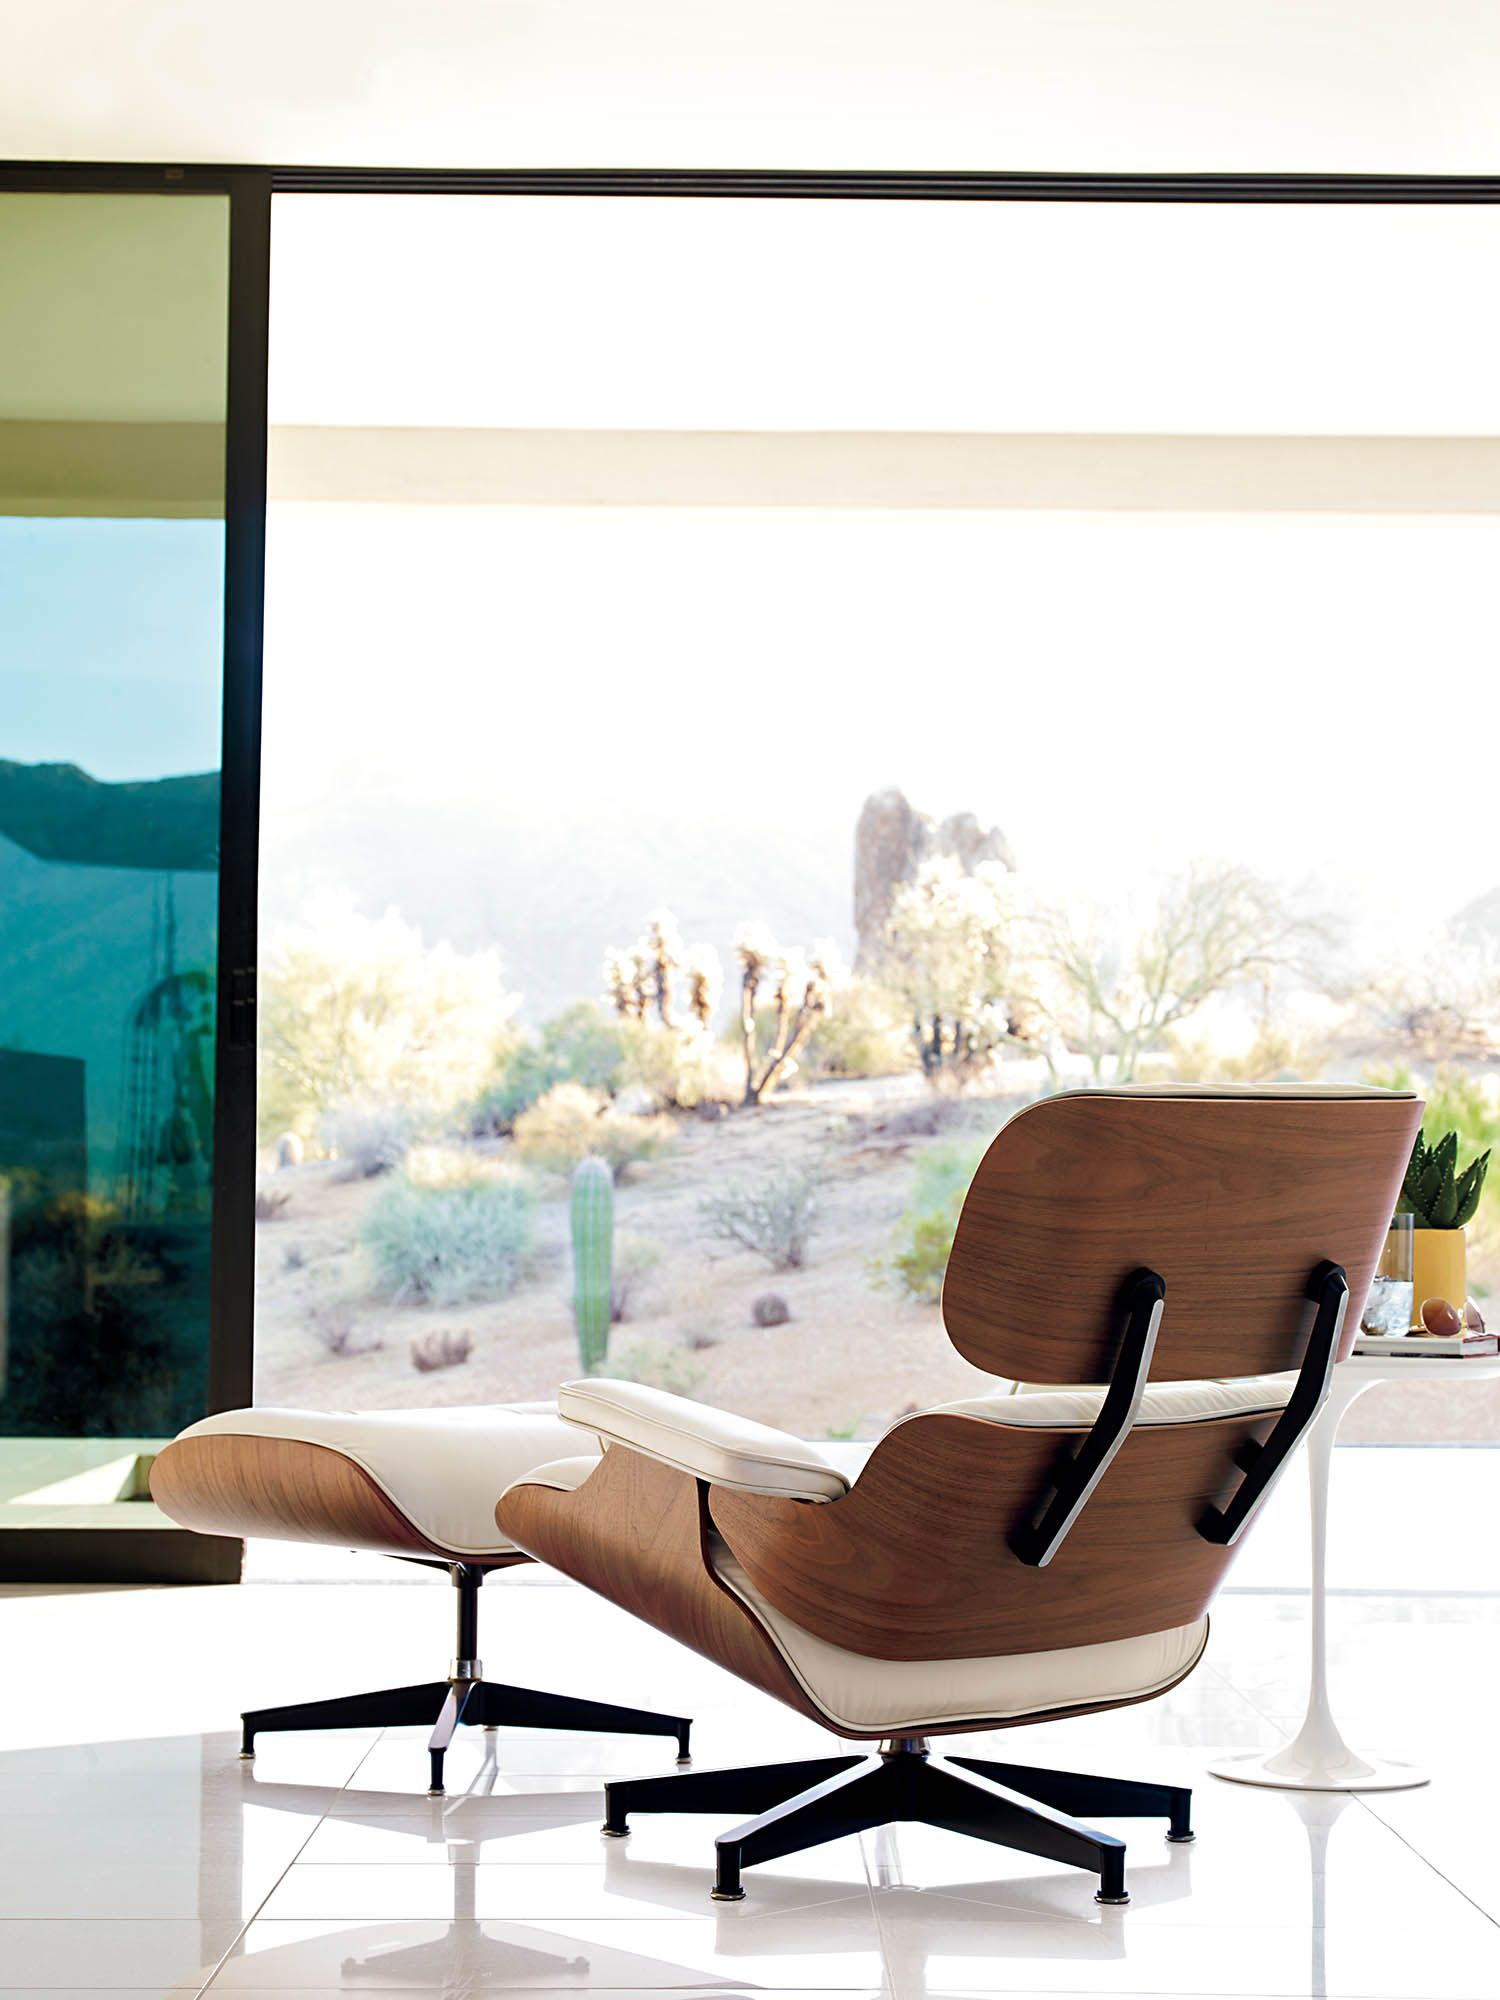 Eames Lounge And Ottoman - Designed By Charles And Ray